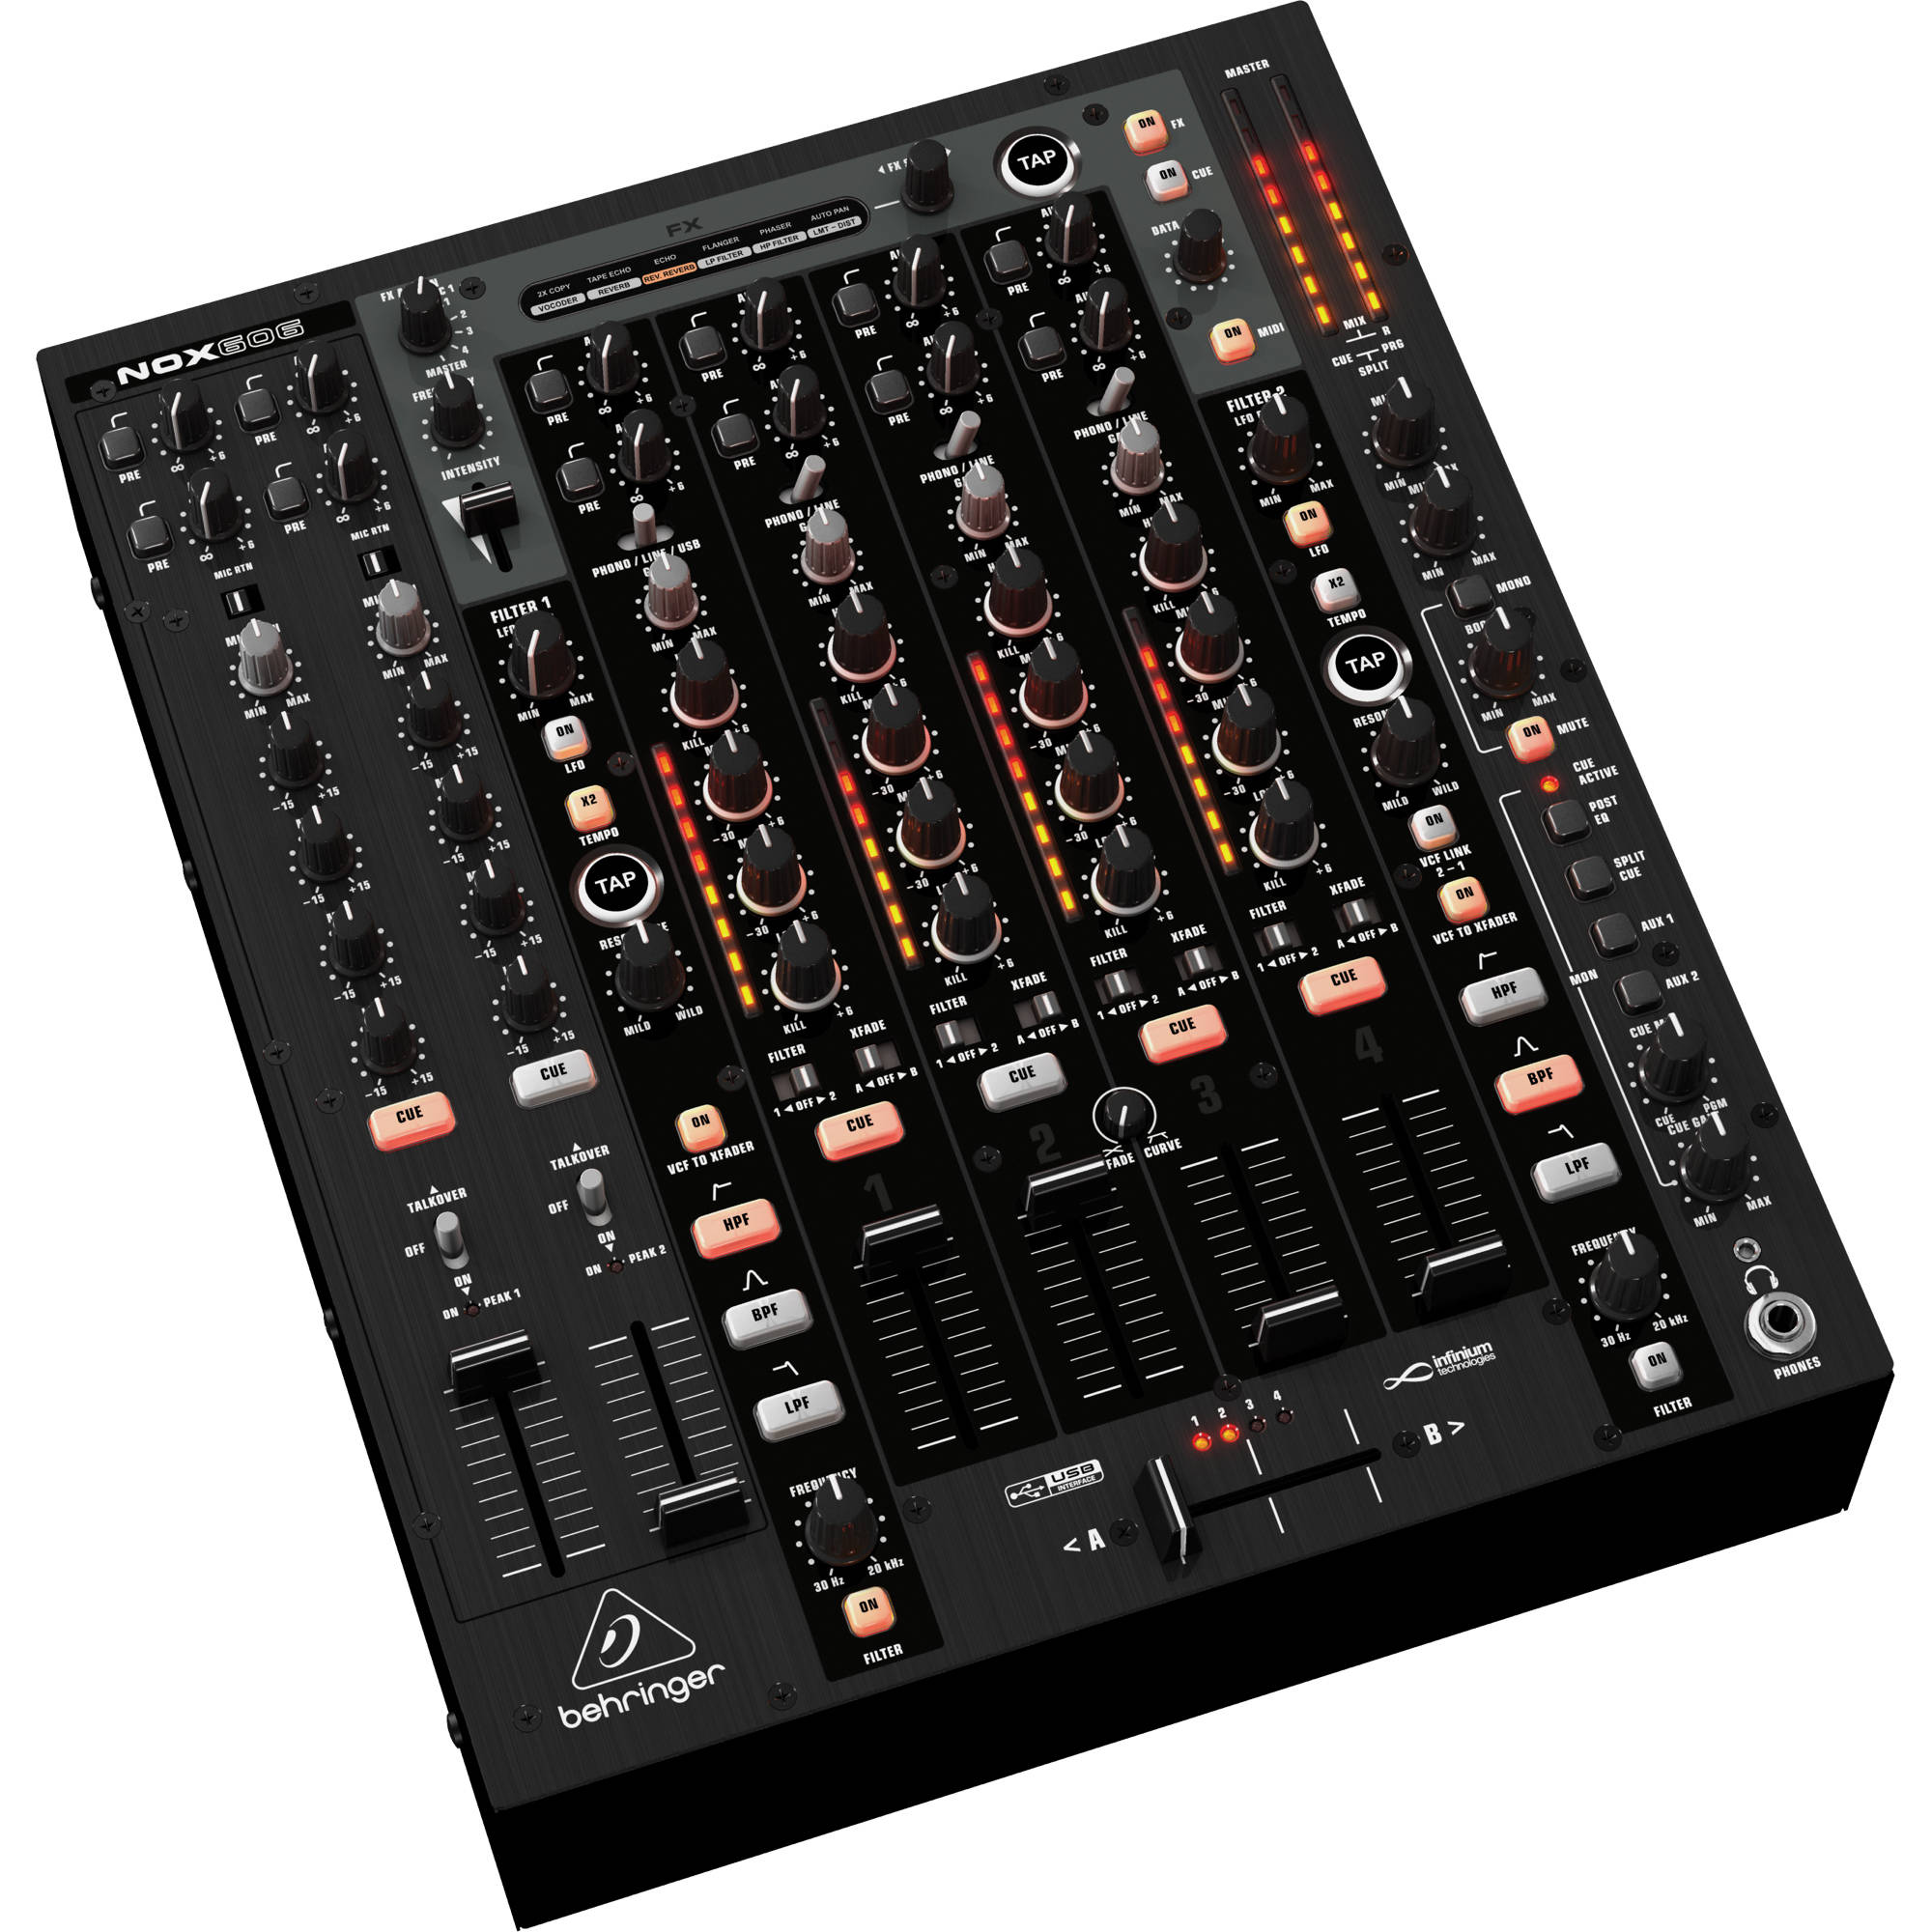 behringer pro mixer nox606 premium 6 channel dj mixer nox606 b h. Black Bedroom Furniture Sets. Home Design Ideas